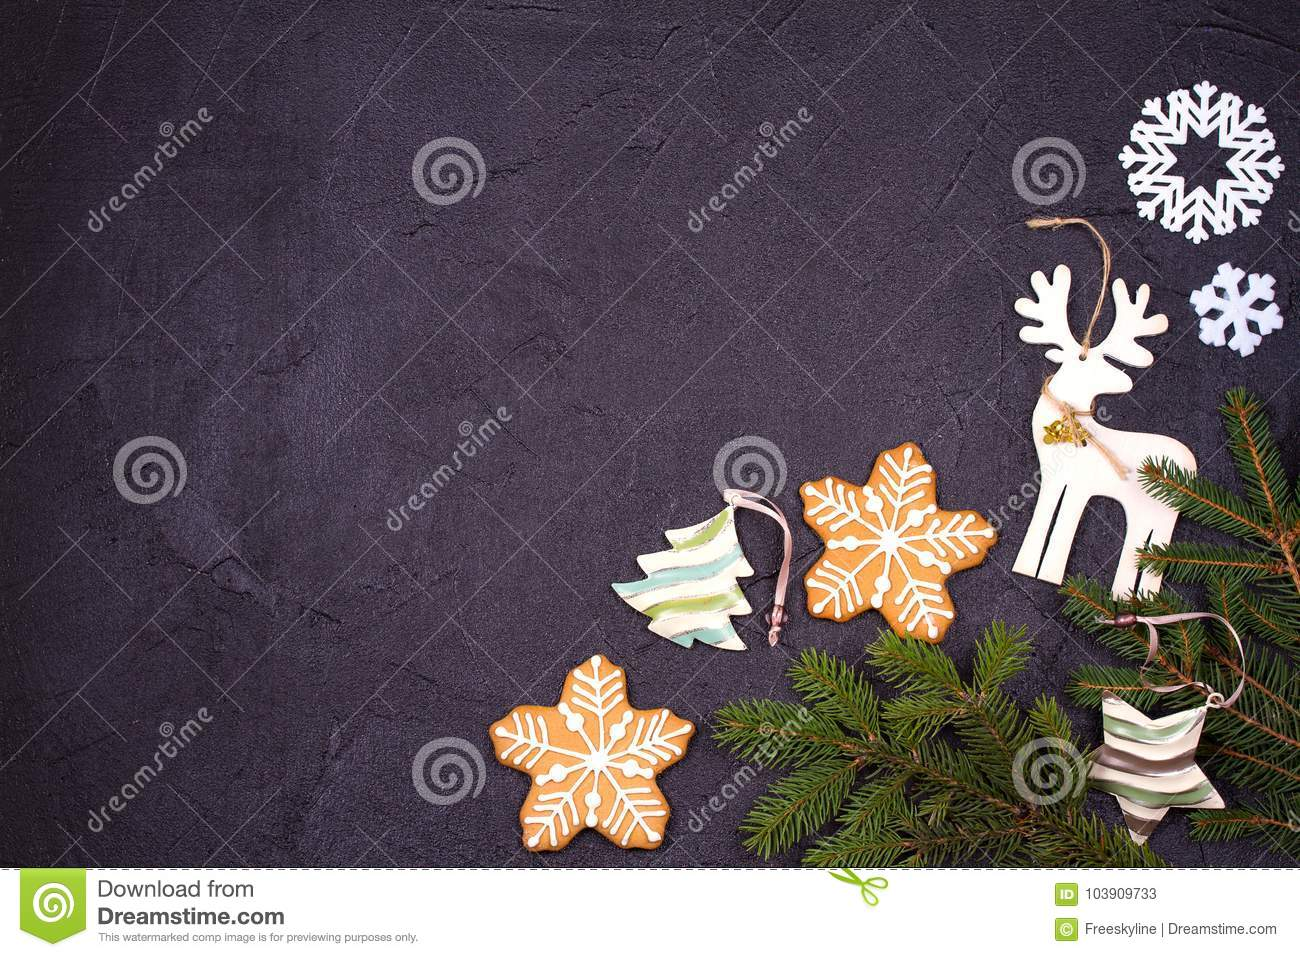 christmas and new year border or frame on black background winter holidays concept